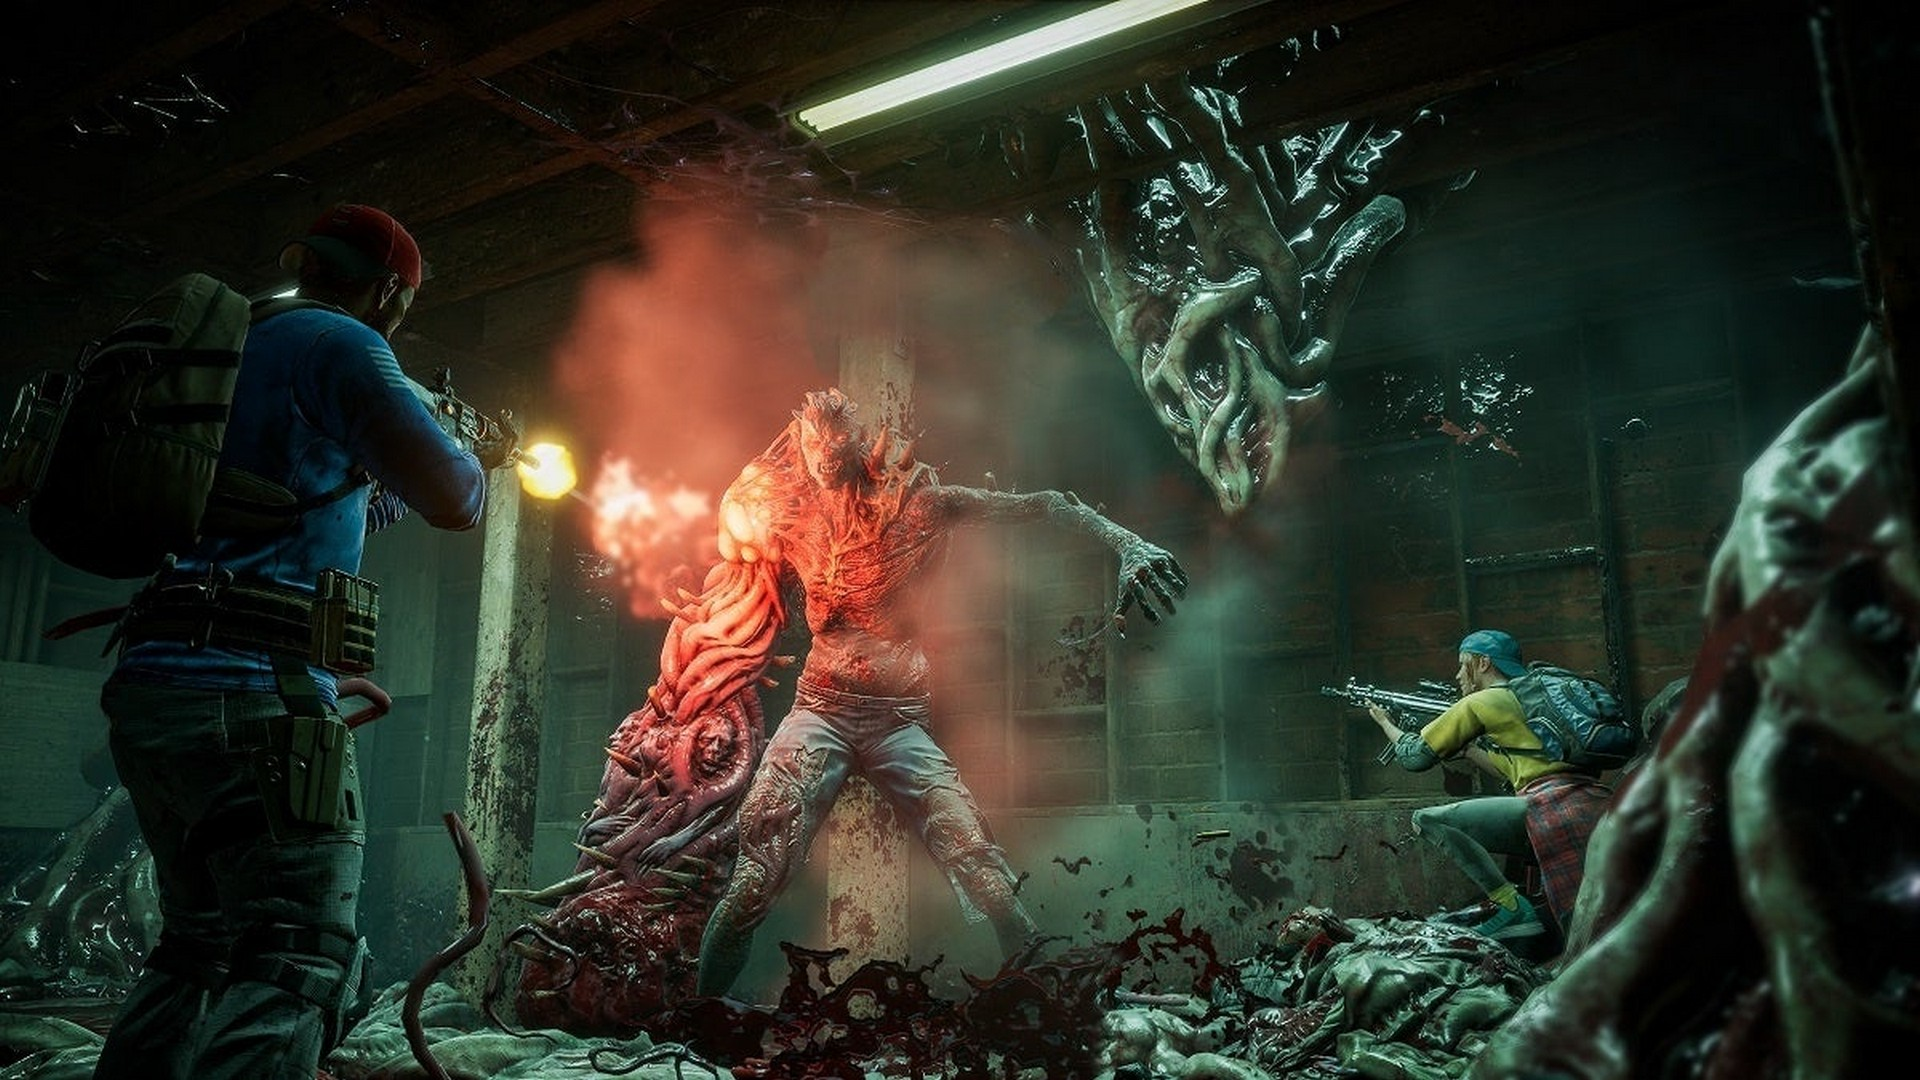 New Back 4 Blood Campaign Trailer Spotlights The Monumental Battle Awaiting The Cleaners